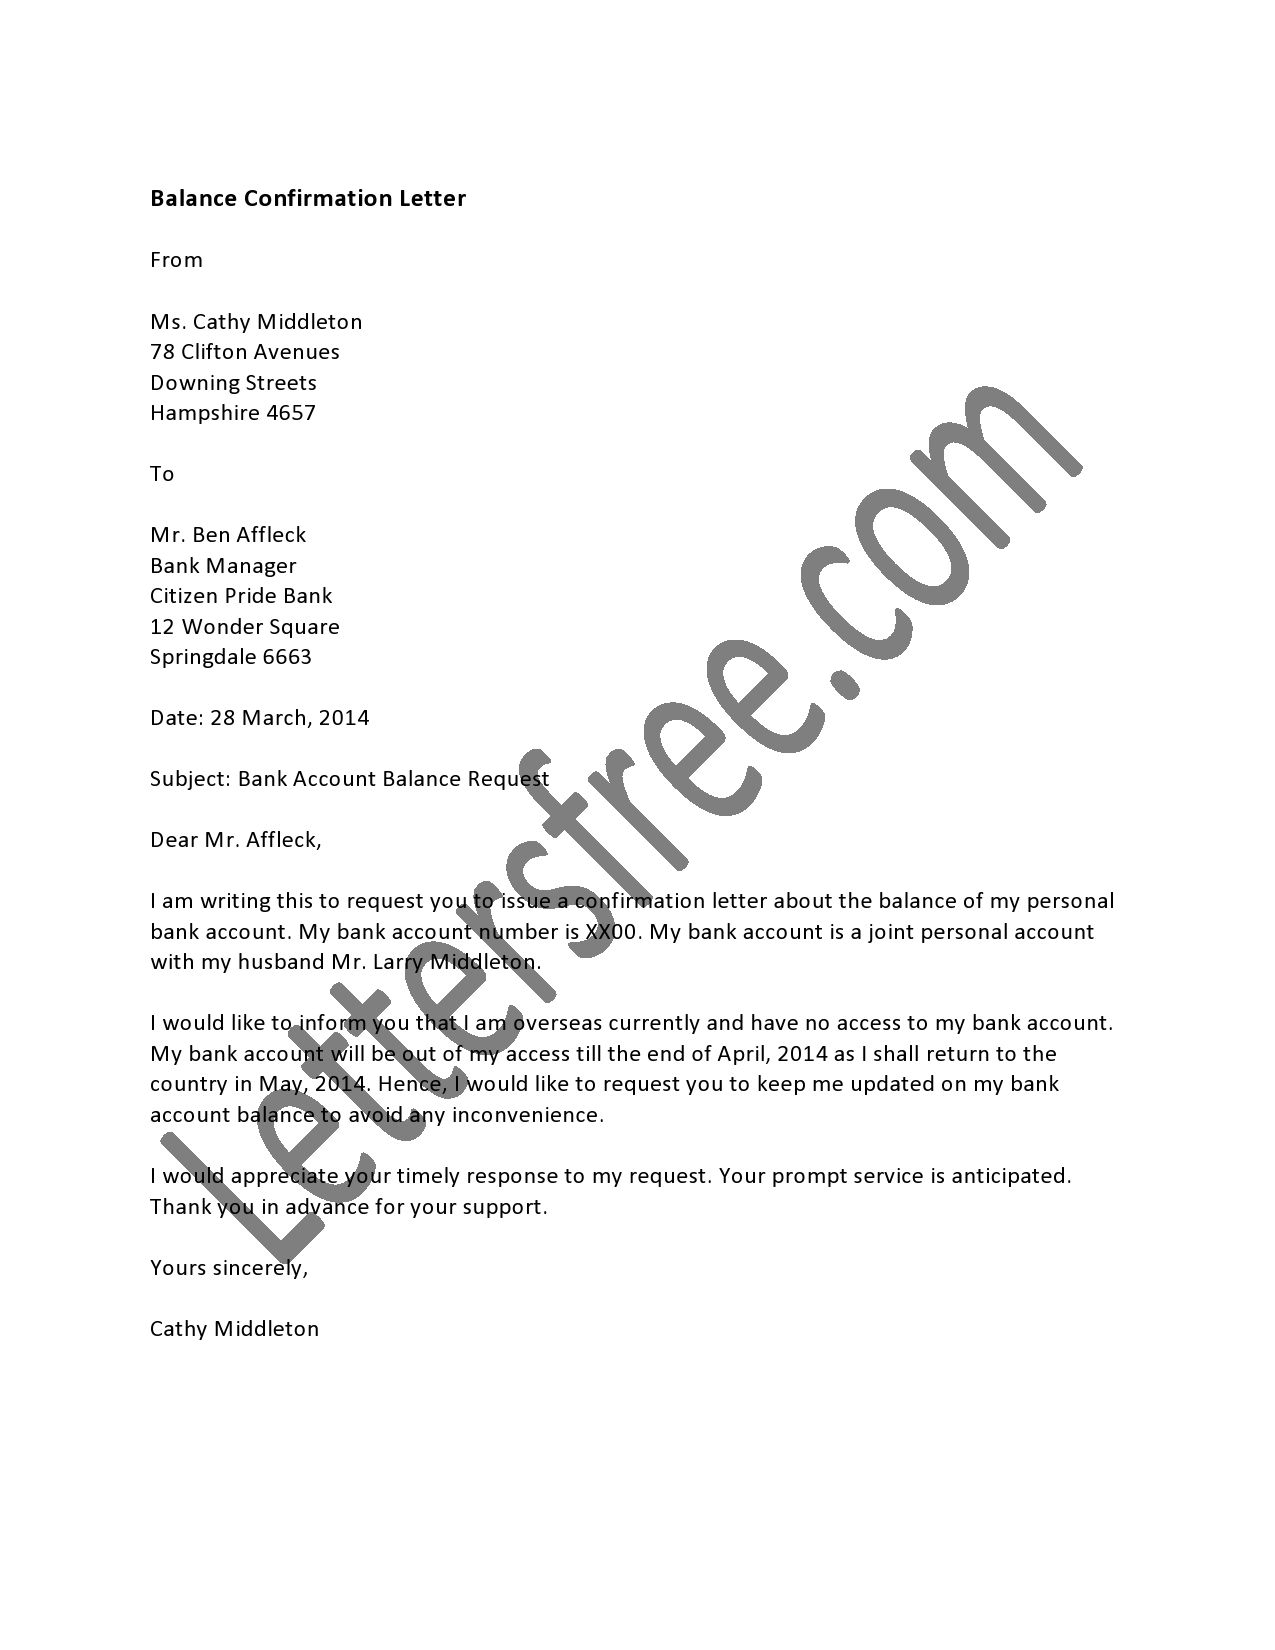 Balance confirmation letter format for the auditors and annual balance confirmation letter format for the auditors and annual audits balance confirmation from creditors and debtors spiritdancerdesigns Choice Image